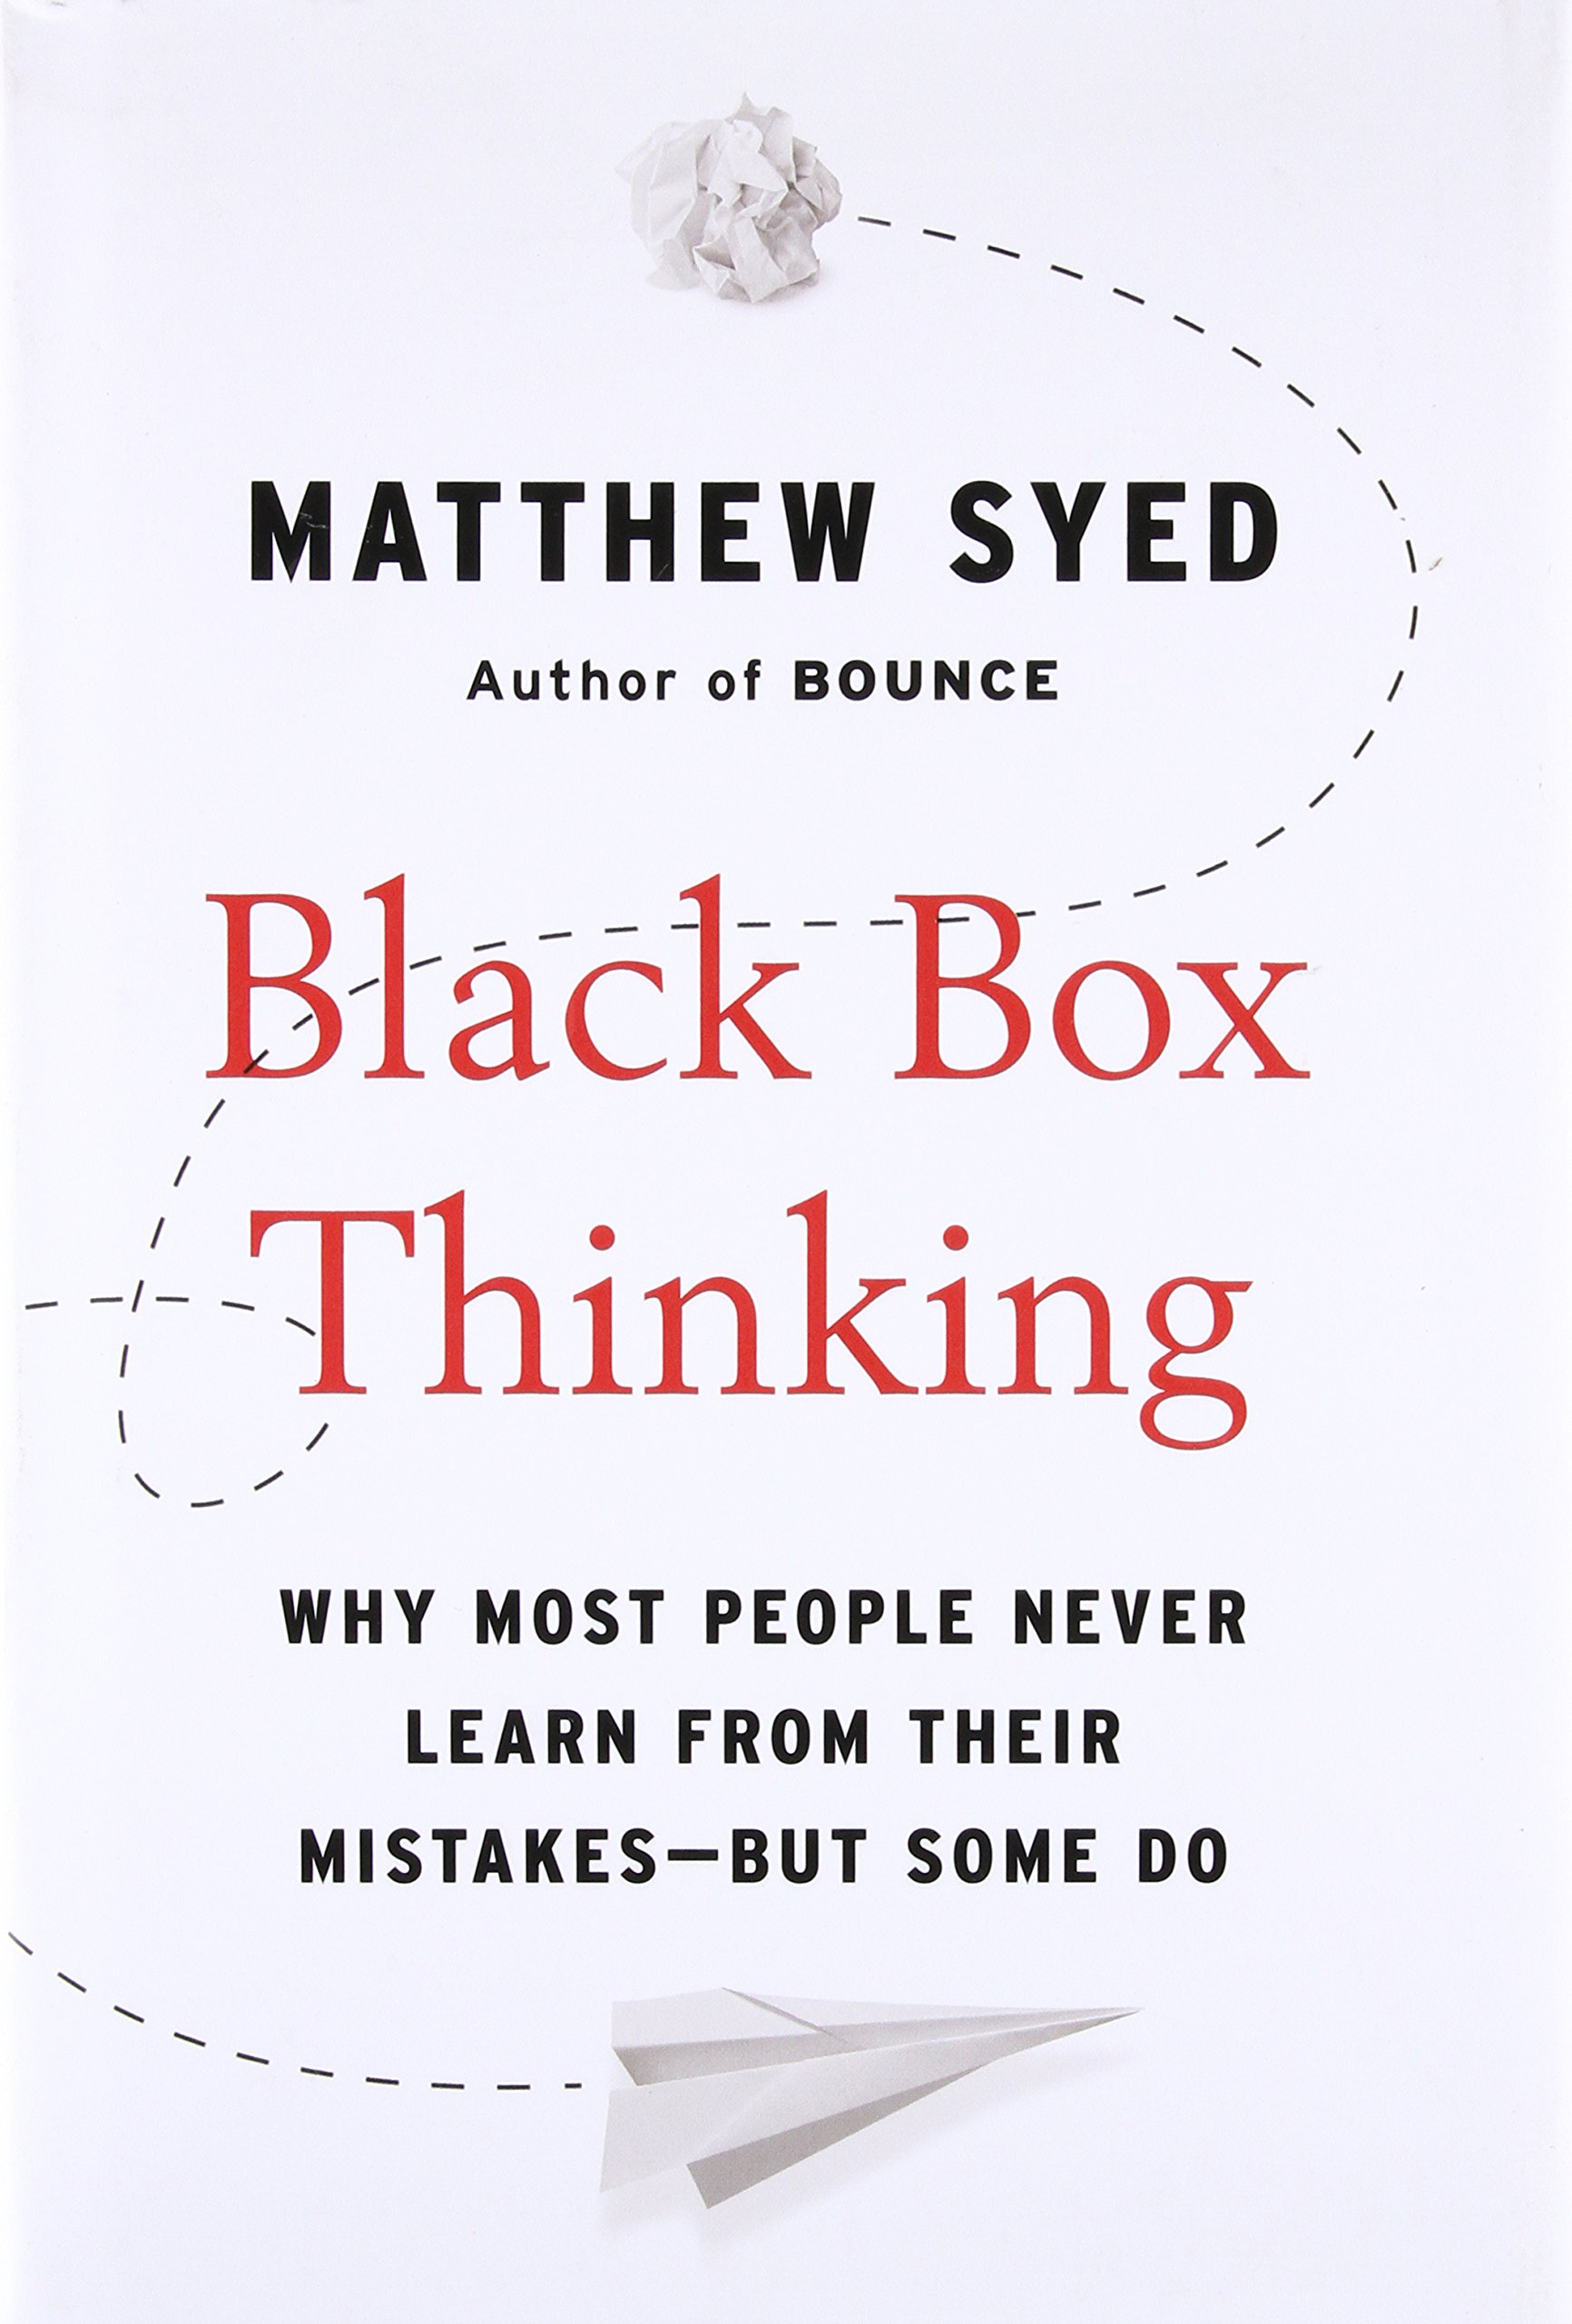 Matthew Syed's Black Box Thinking reminds us about the power of approaching failure with positivity